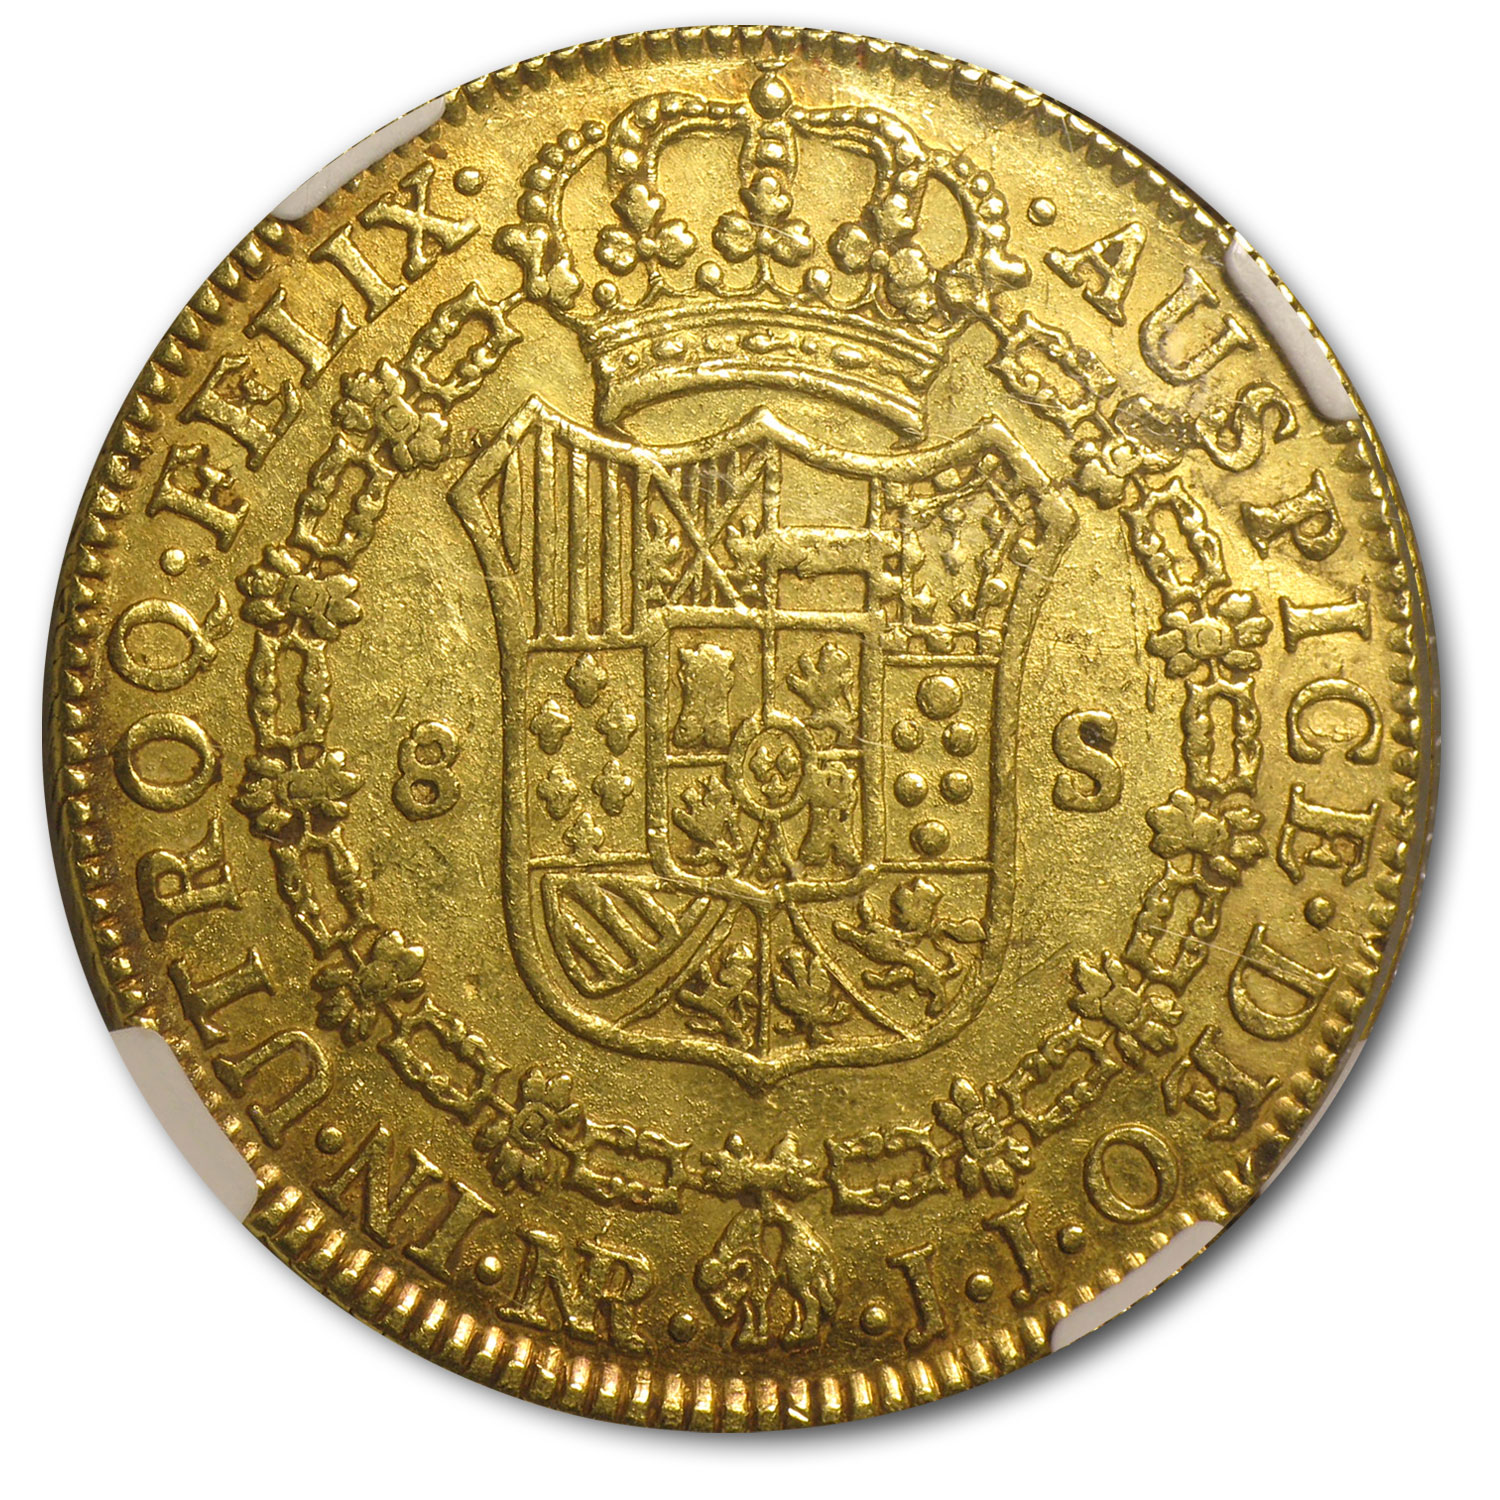 Colombia 1787 Gold 8 Escudo Charles III NGC AU-58